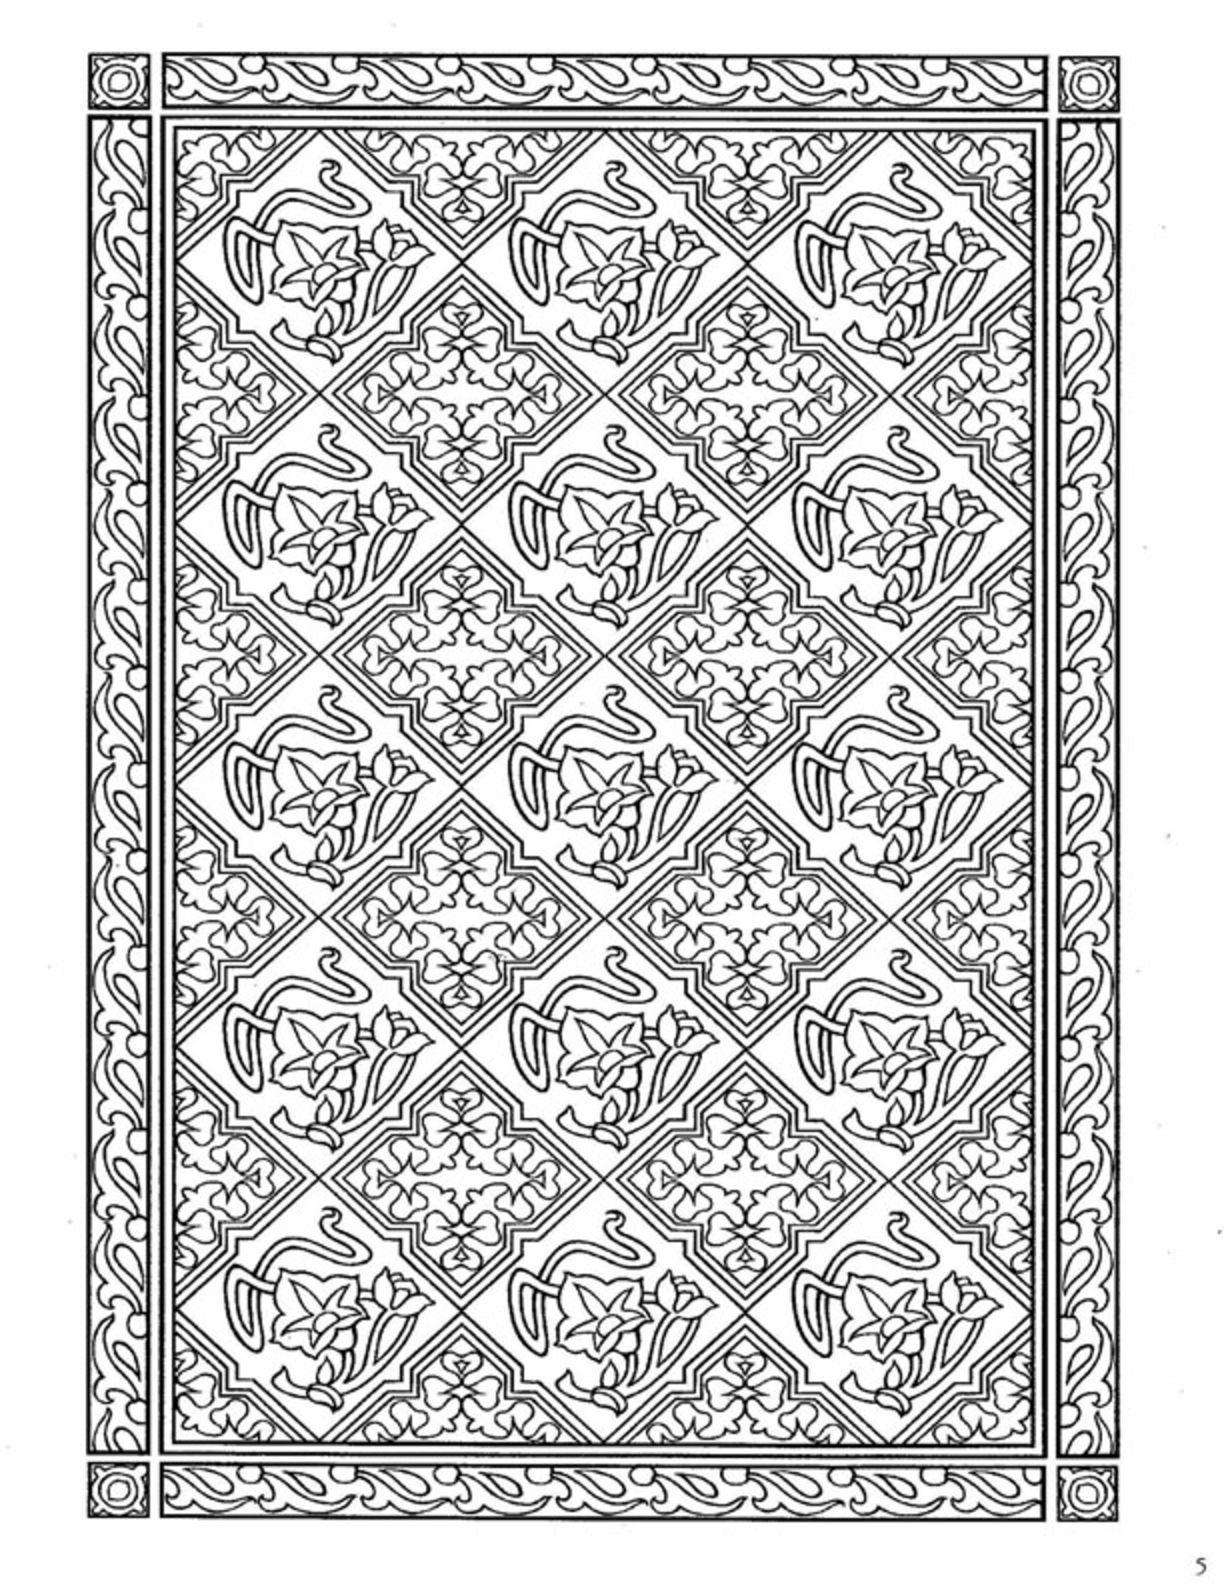 Dover Decorative Tile Coloring Book | Dover Coloring | Pinterest ...